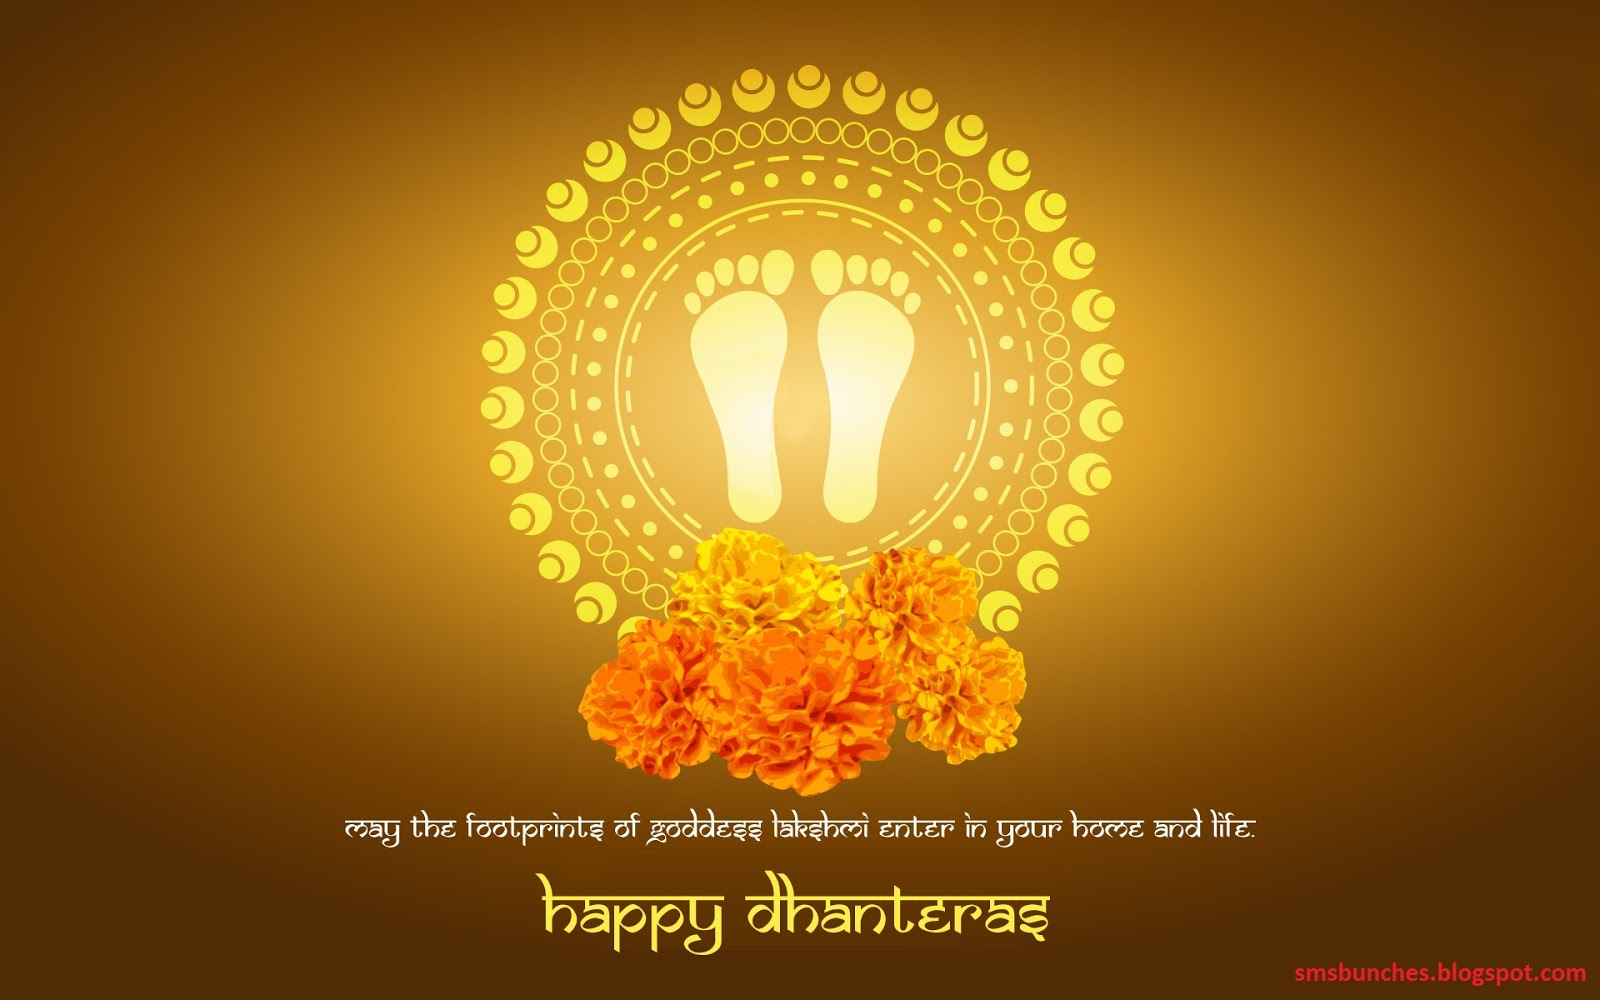 Dhanteras 2015 Sms Happy Dhanatrayodashi Wishes Messages Sms Bunches